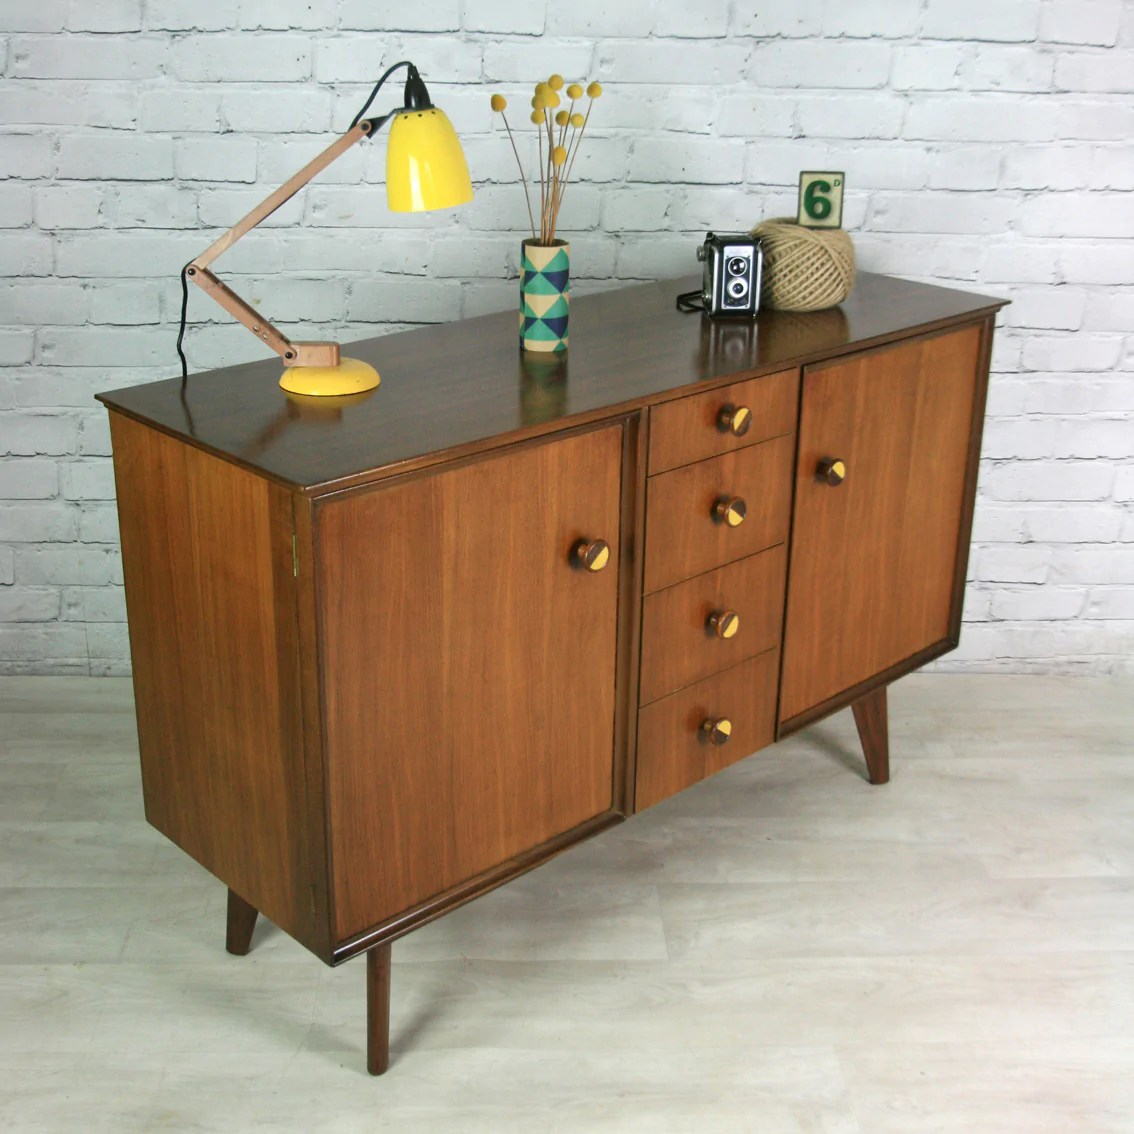 Vintage Sideboard For Sale Uk Vintage 1950s Upcycled Mustard Vintage Sideboard